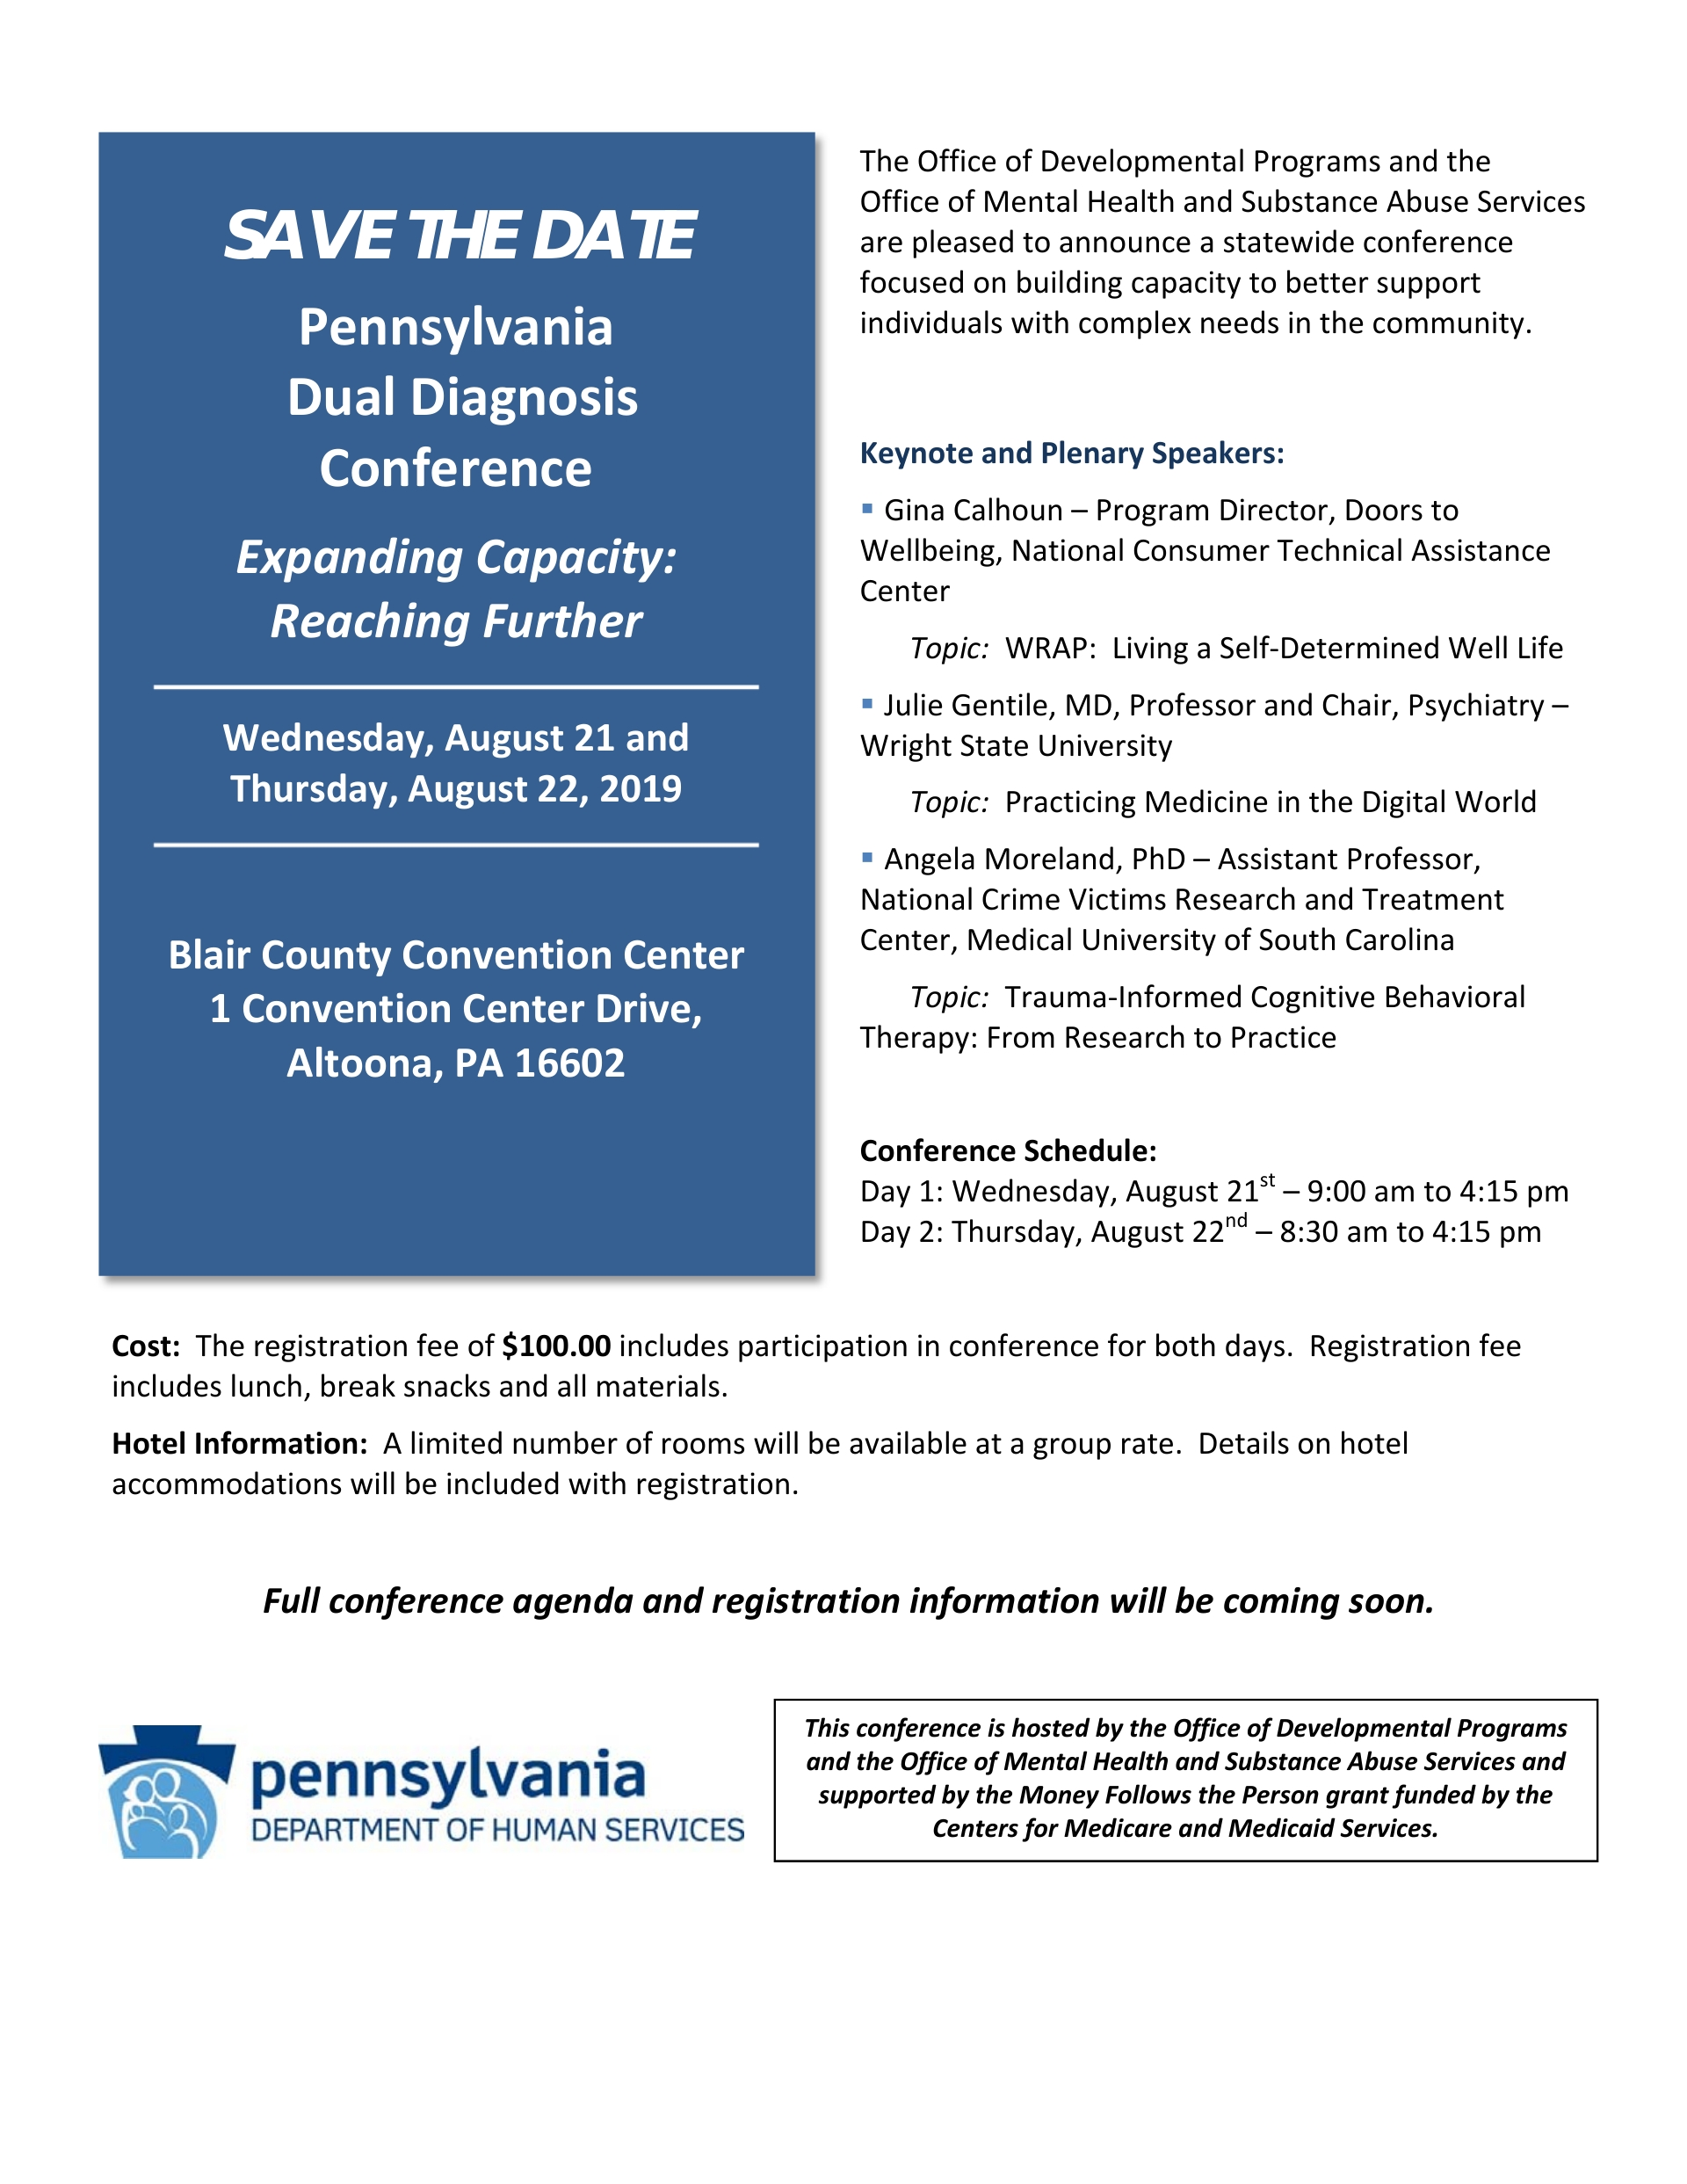 PA DUAL DIAGNOSIS CONFERENCE August 21 and 22, 2019 Altoona, PA